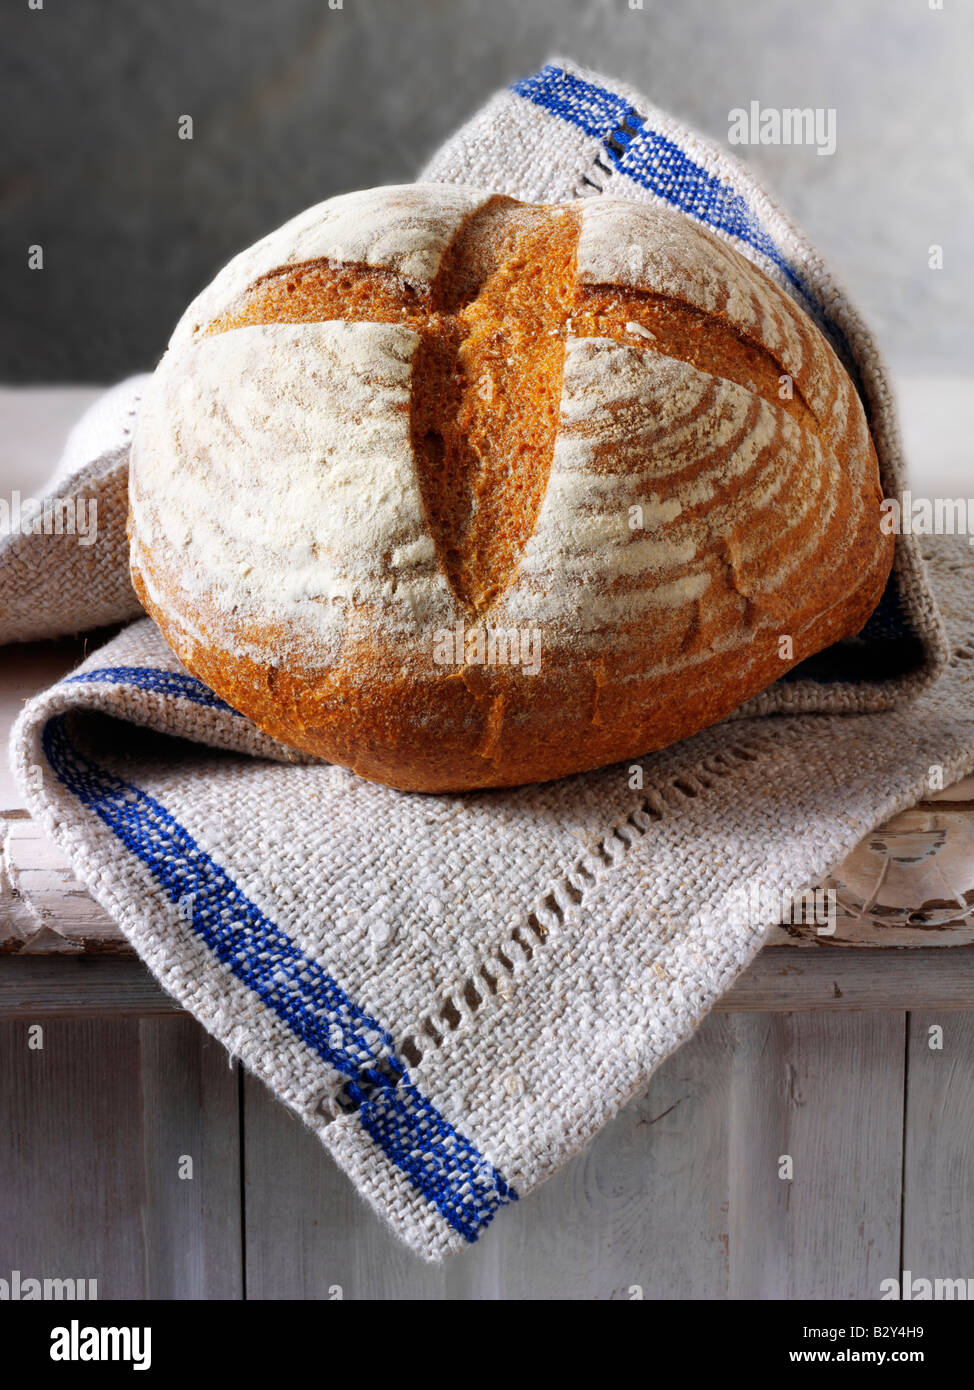 English Rye bread loaf - Stock Image